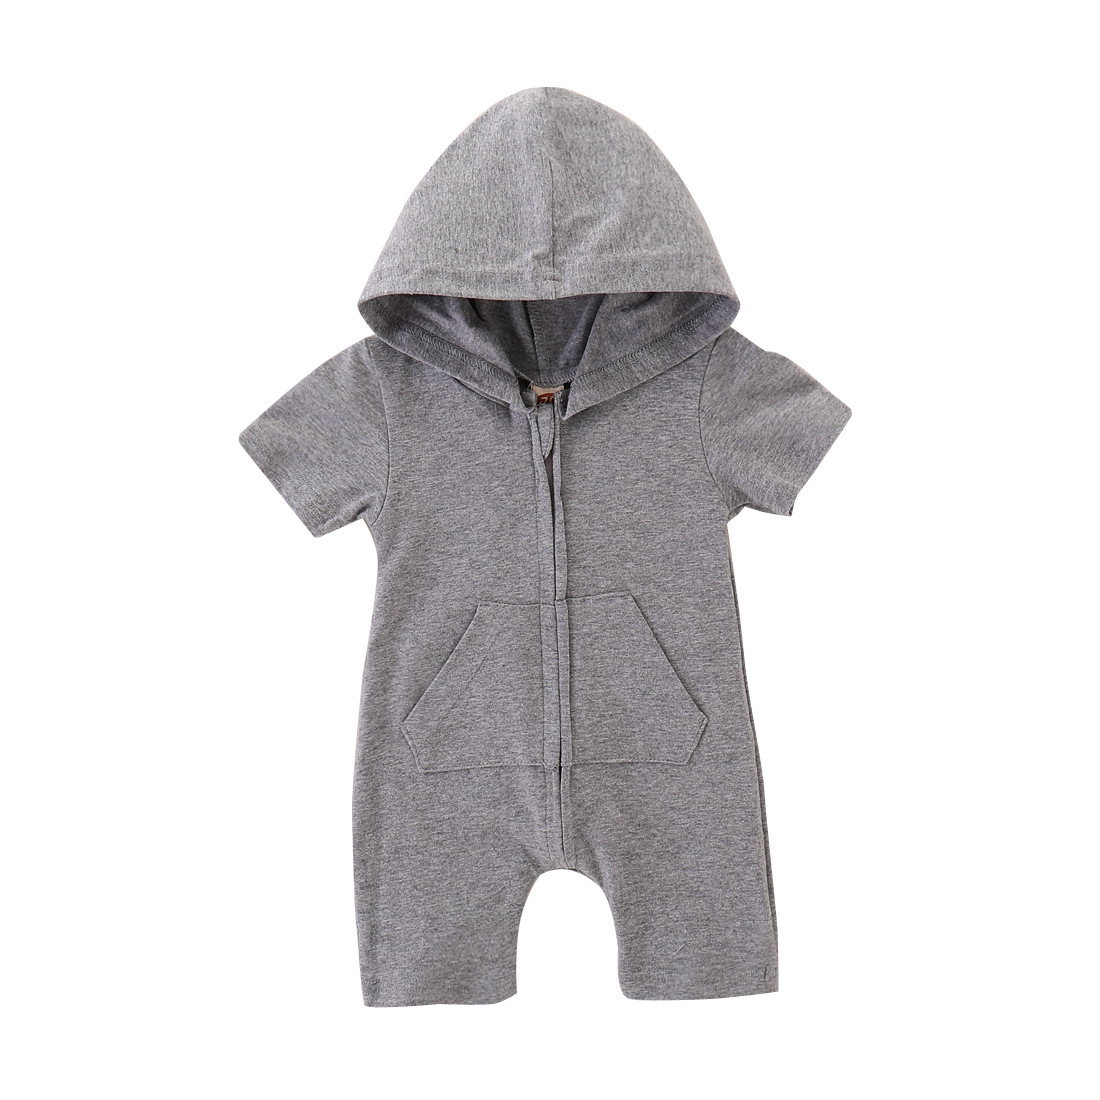 Brand New Born Newborn Toddler Infant Baby Boys Girl Casual Romper Jumpsuit Cotton Short Sleeve Clothes Summer Sunsuit Outfits